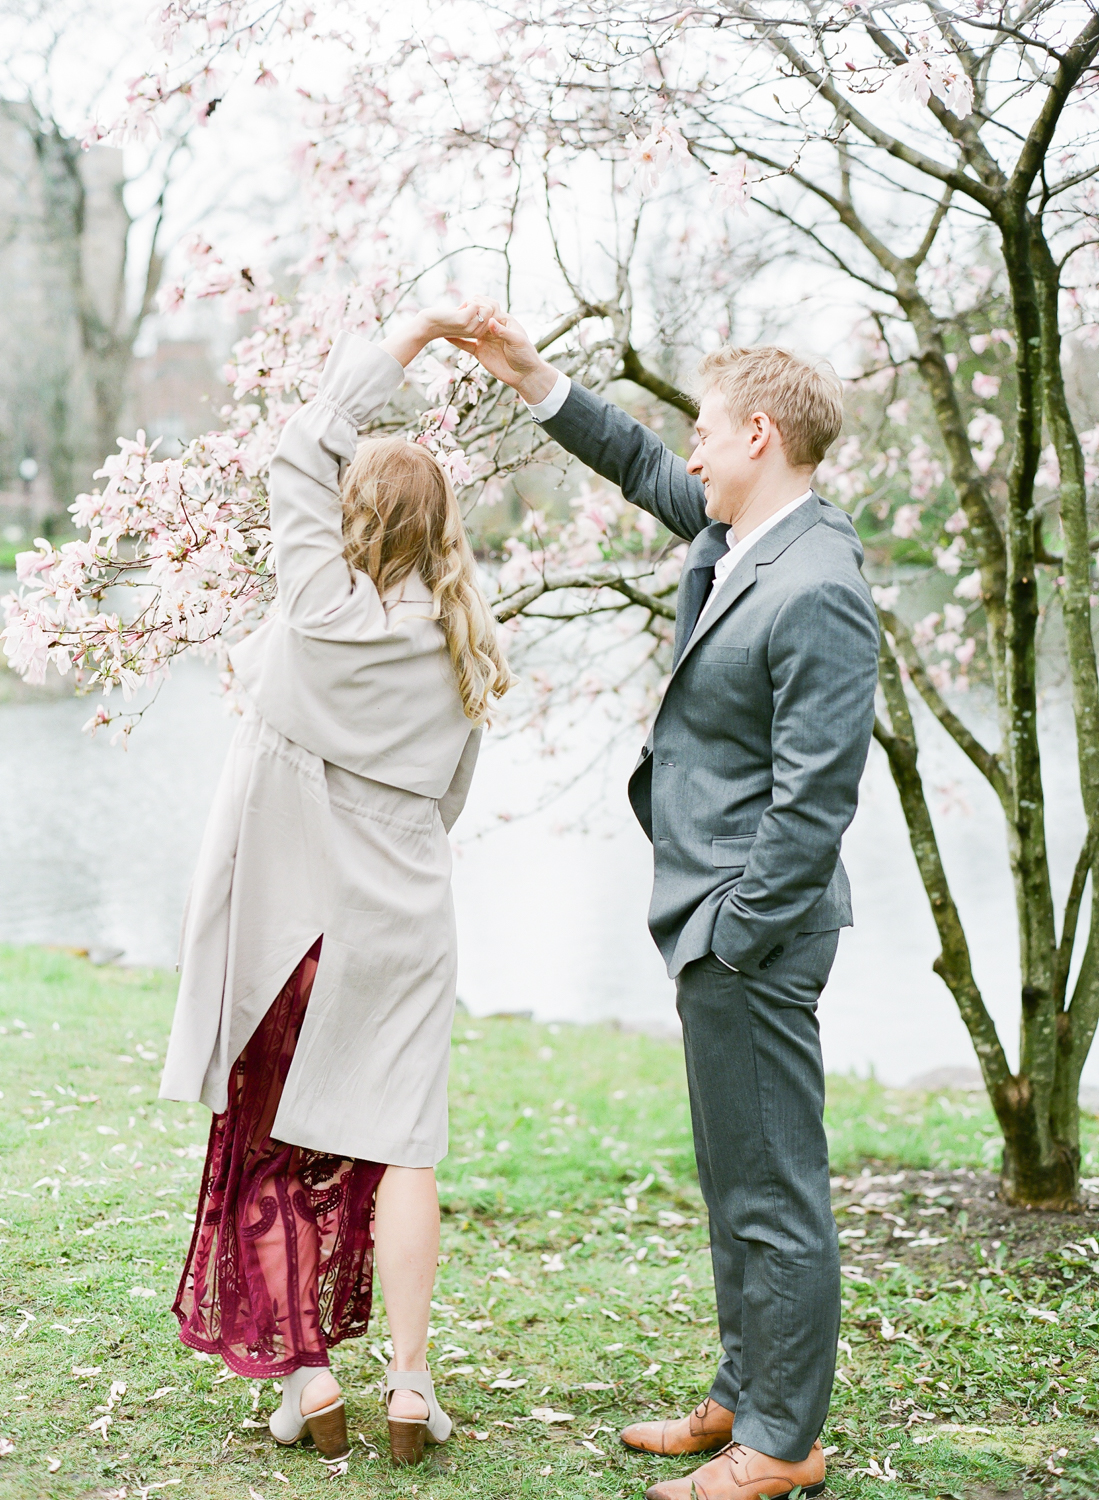 Jacqueline Anne Photography - Amanda and Brent-60.jpg